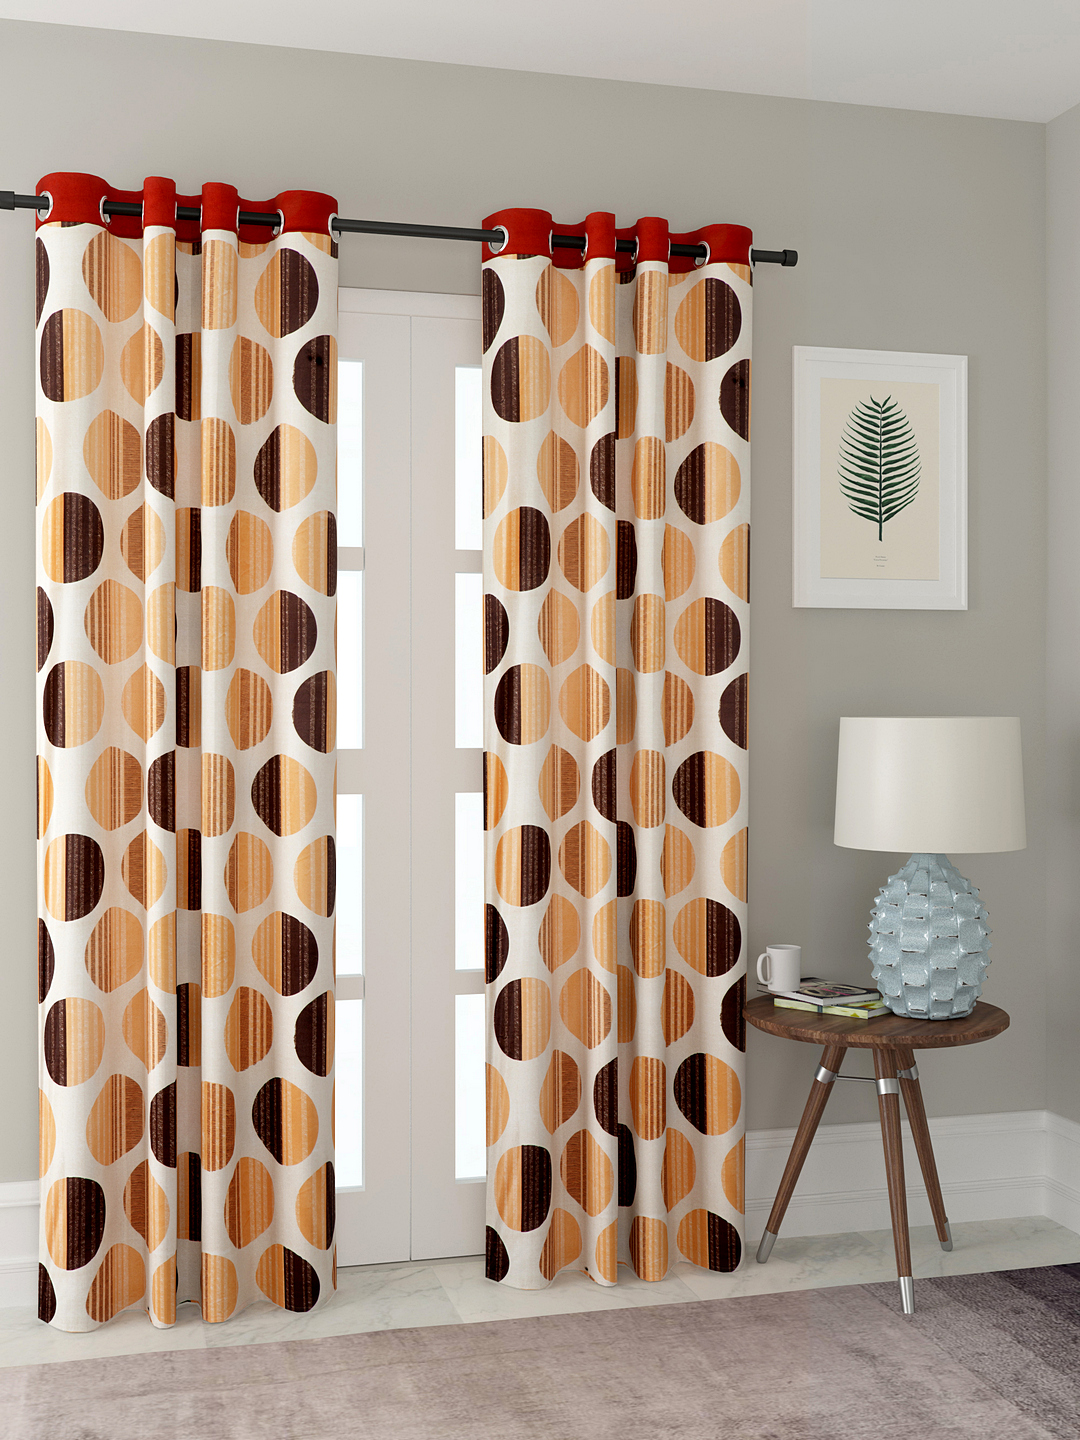 Polyester Printed Long Door Curtains for Bedroom, Kitchen, Kids or Living Room-018_Set of 2